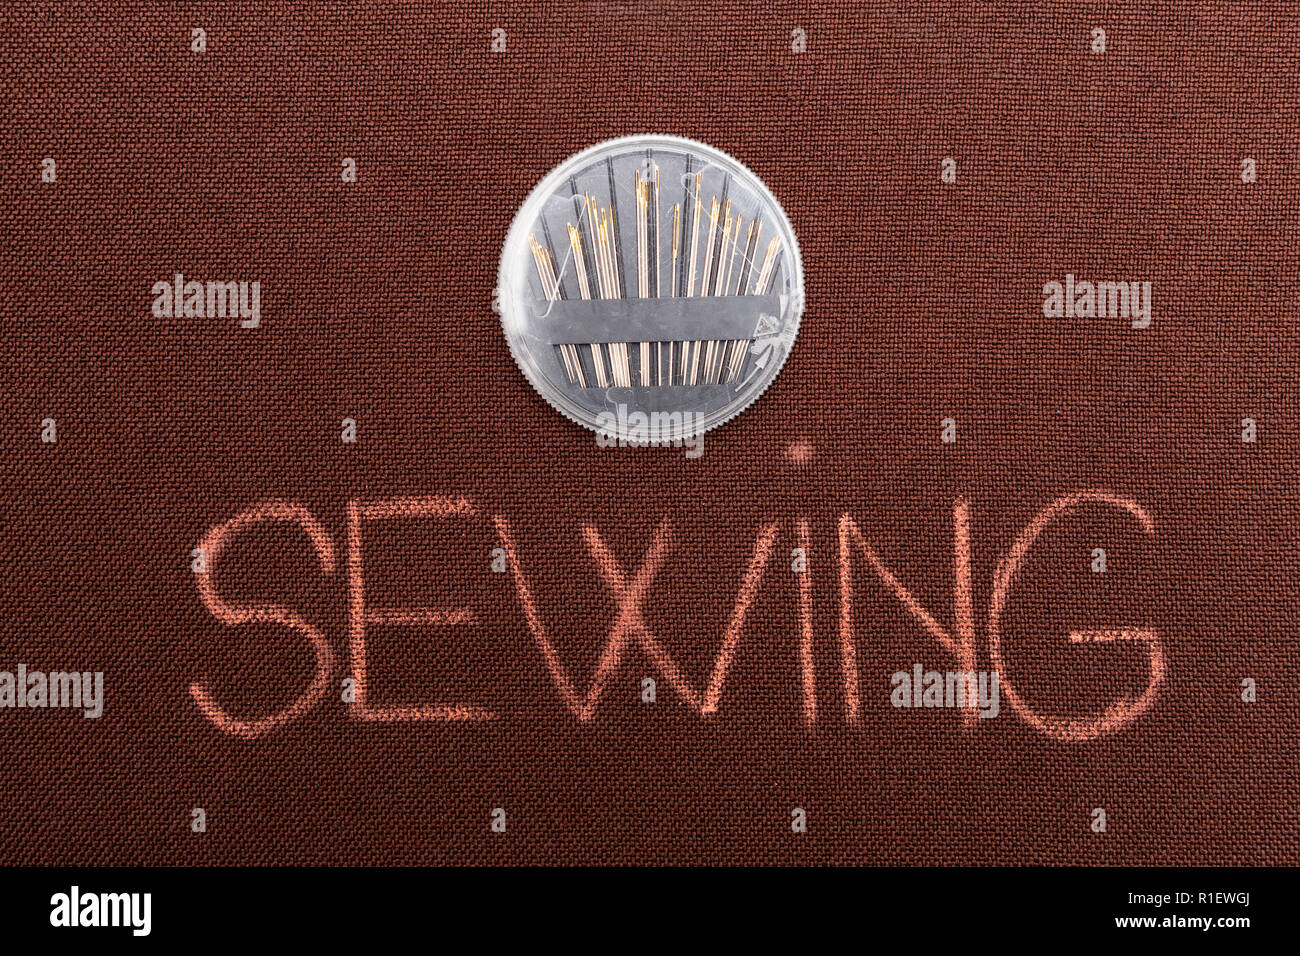 Sewing text with plastic needle holder above on brown fabric background - Stock Image